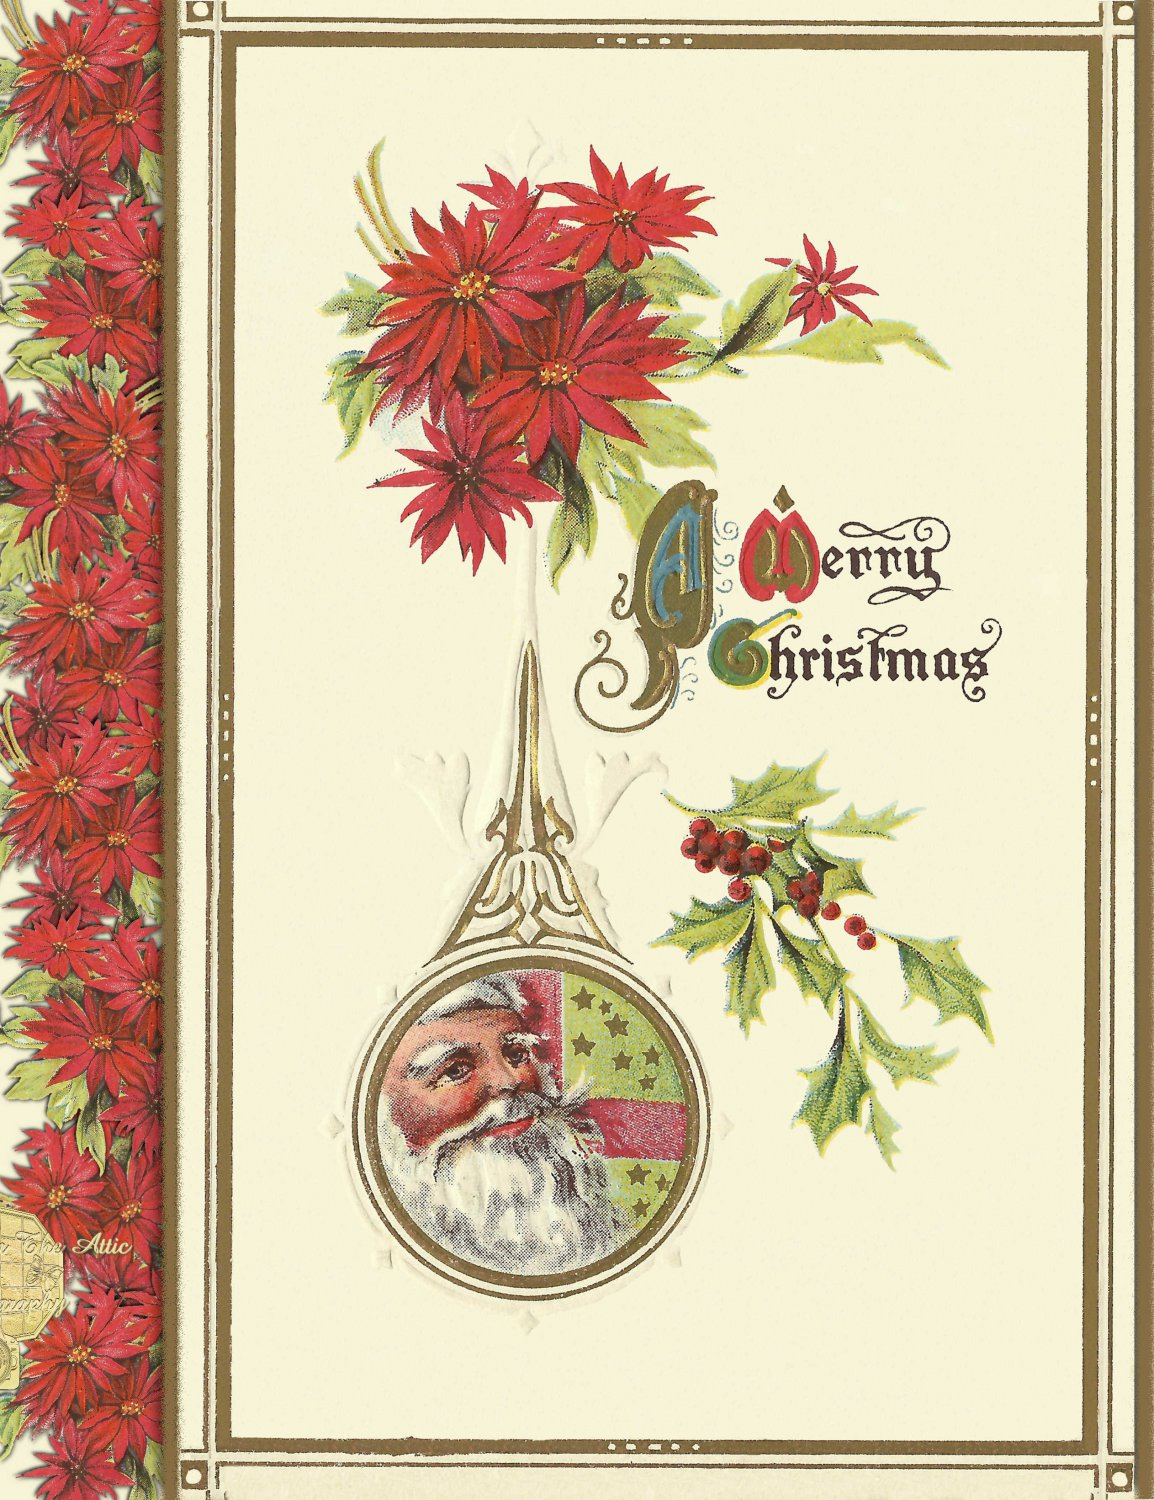 Handmade Christmas Cards Set of 5, Santa Clause in Dew Drop Shaped Ornament with Poinsettias